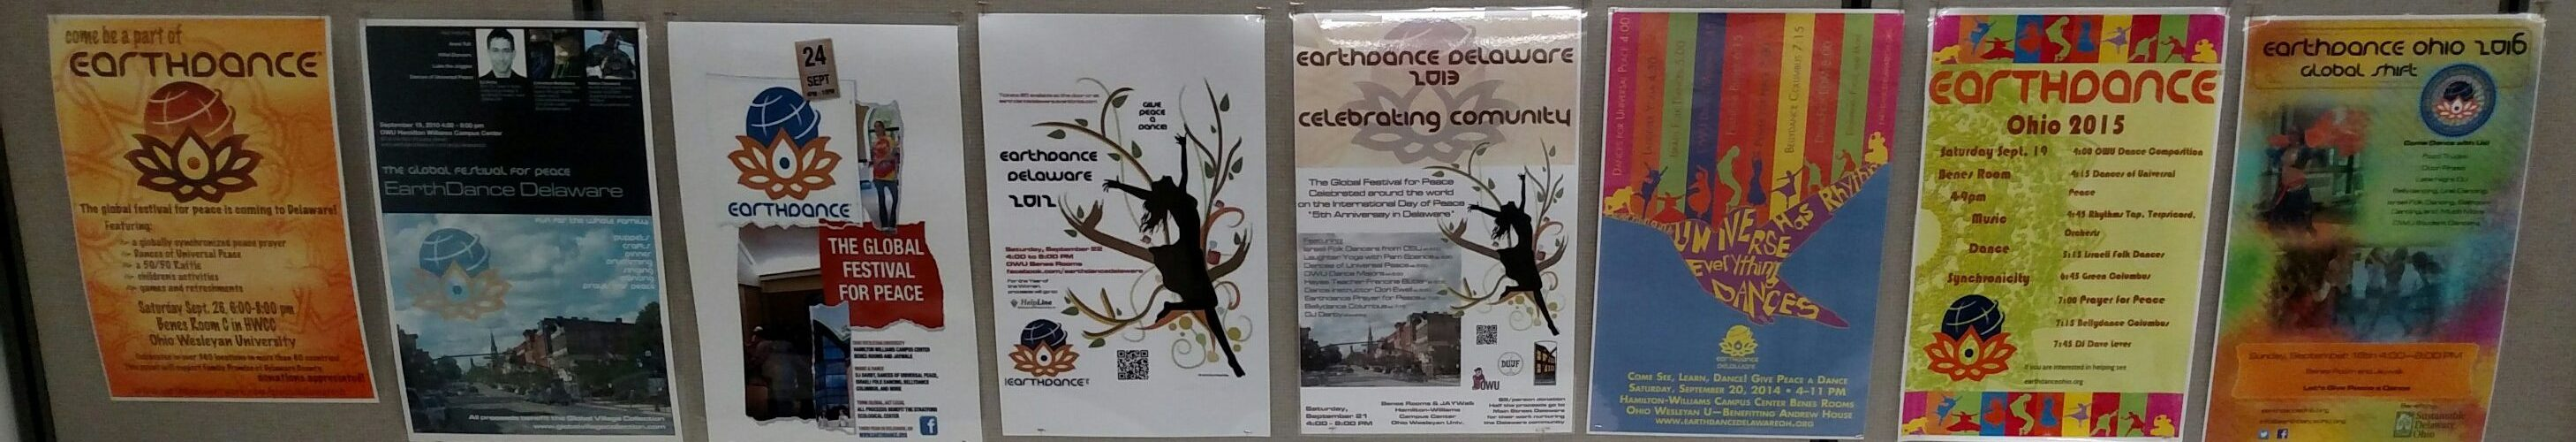 Earthdance Ohio posters from 2009-'16